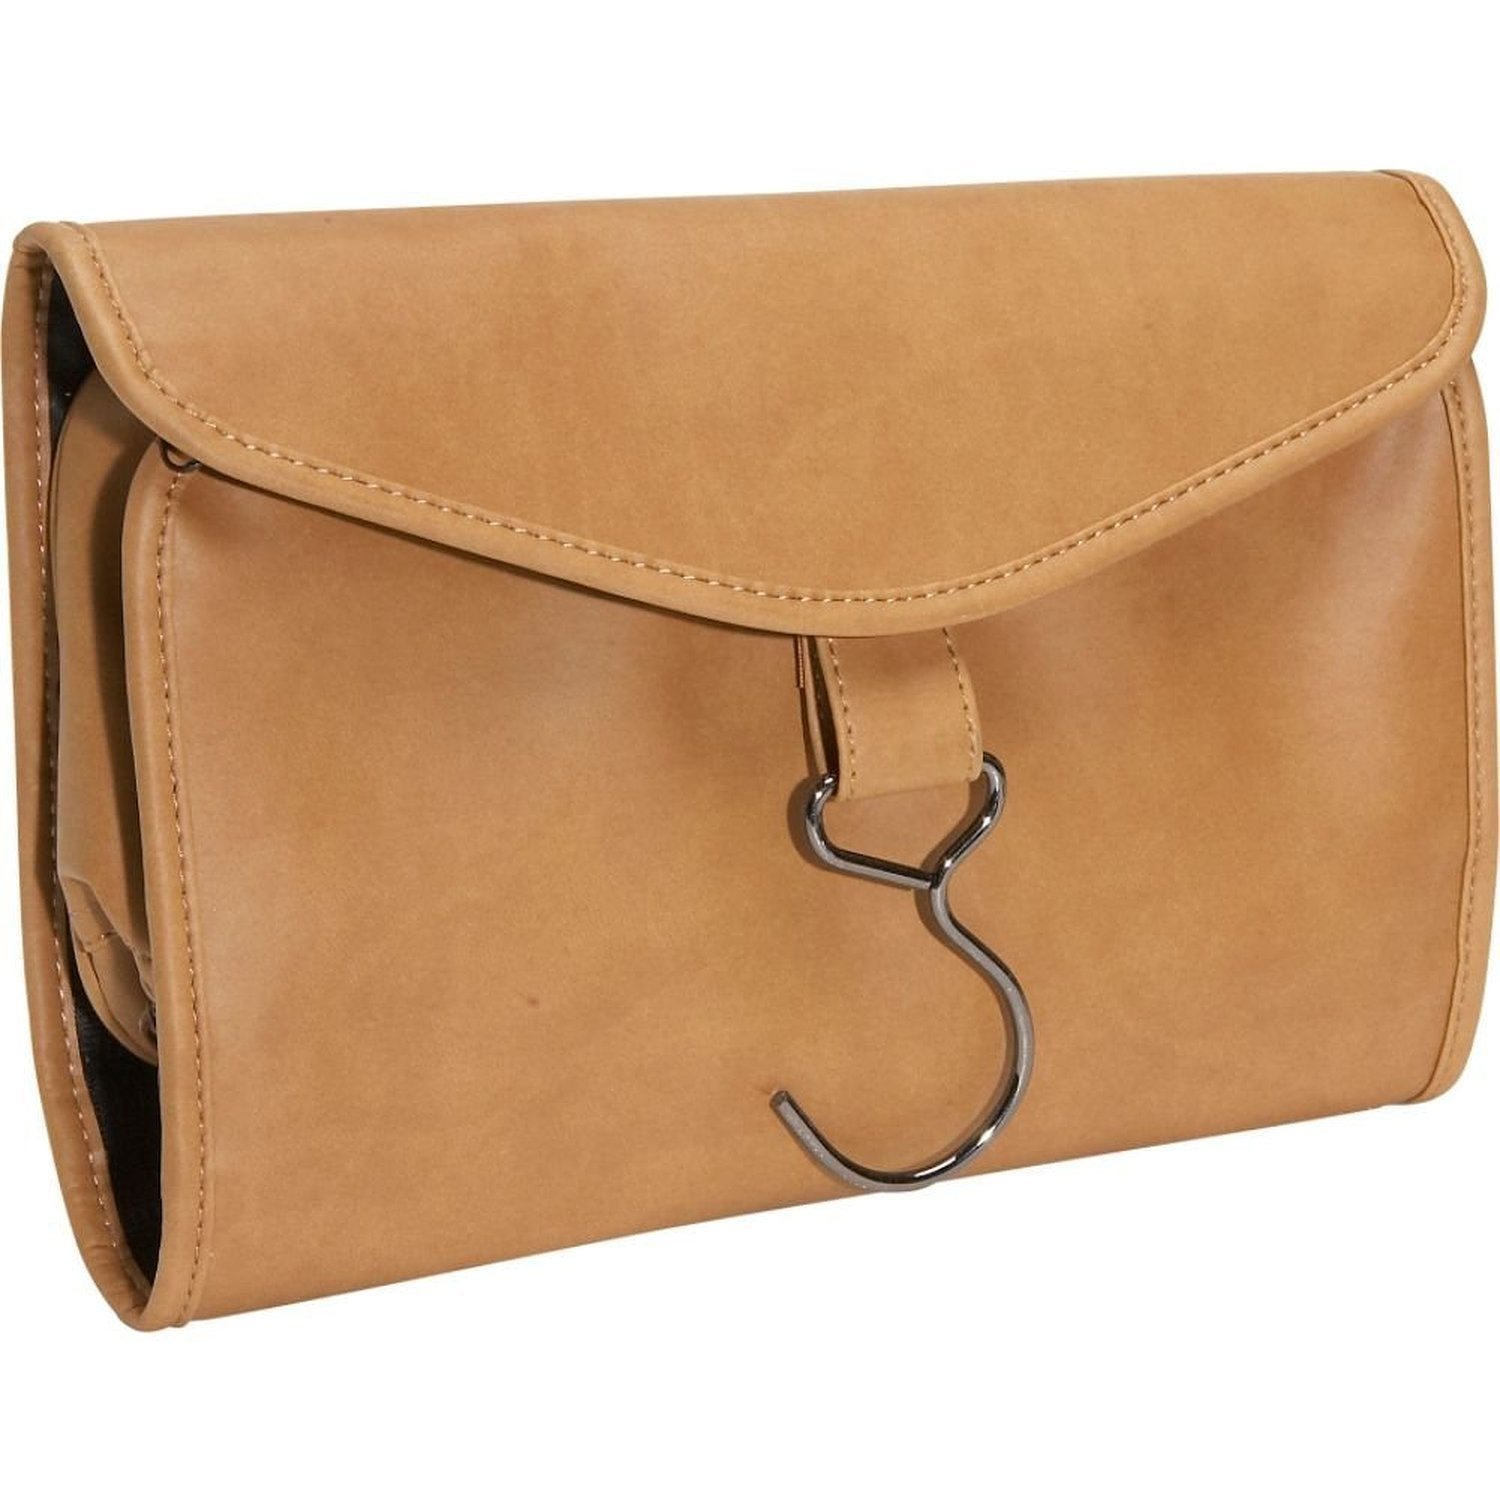 Royce Leather Hanging Toiletry Bag (Tan)